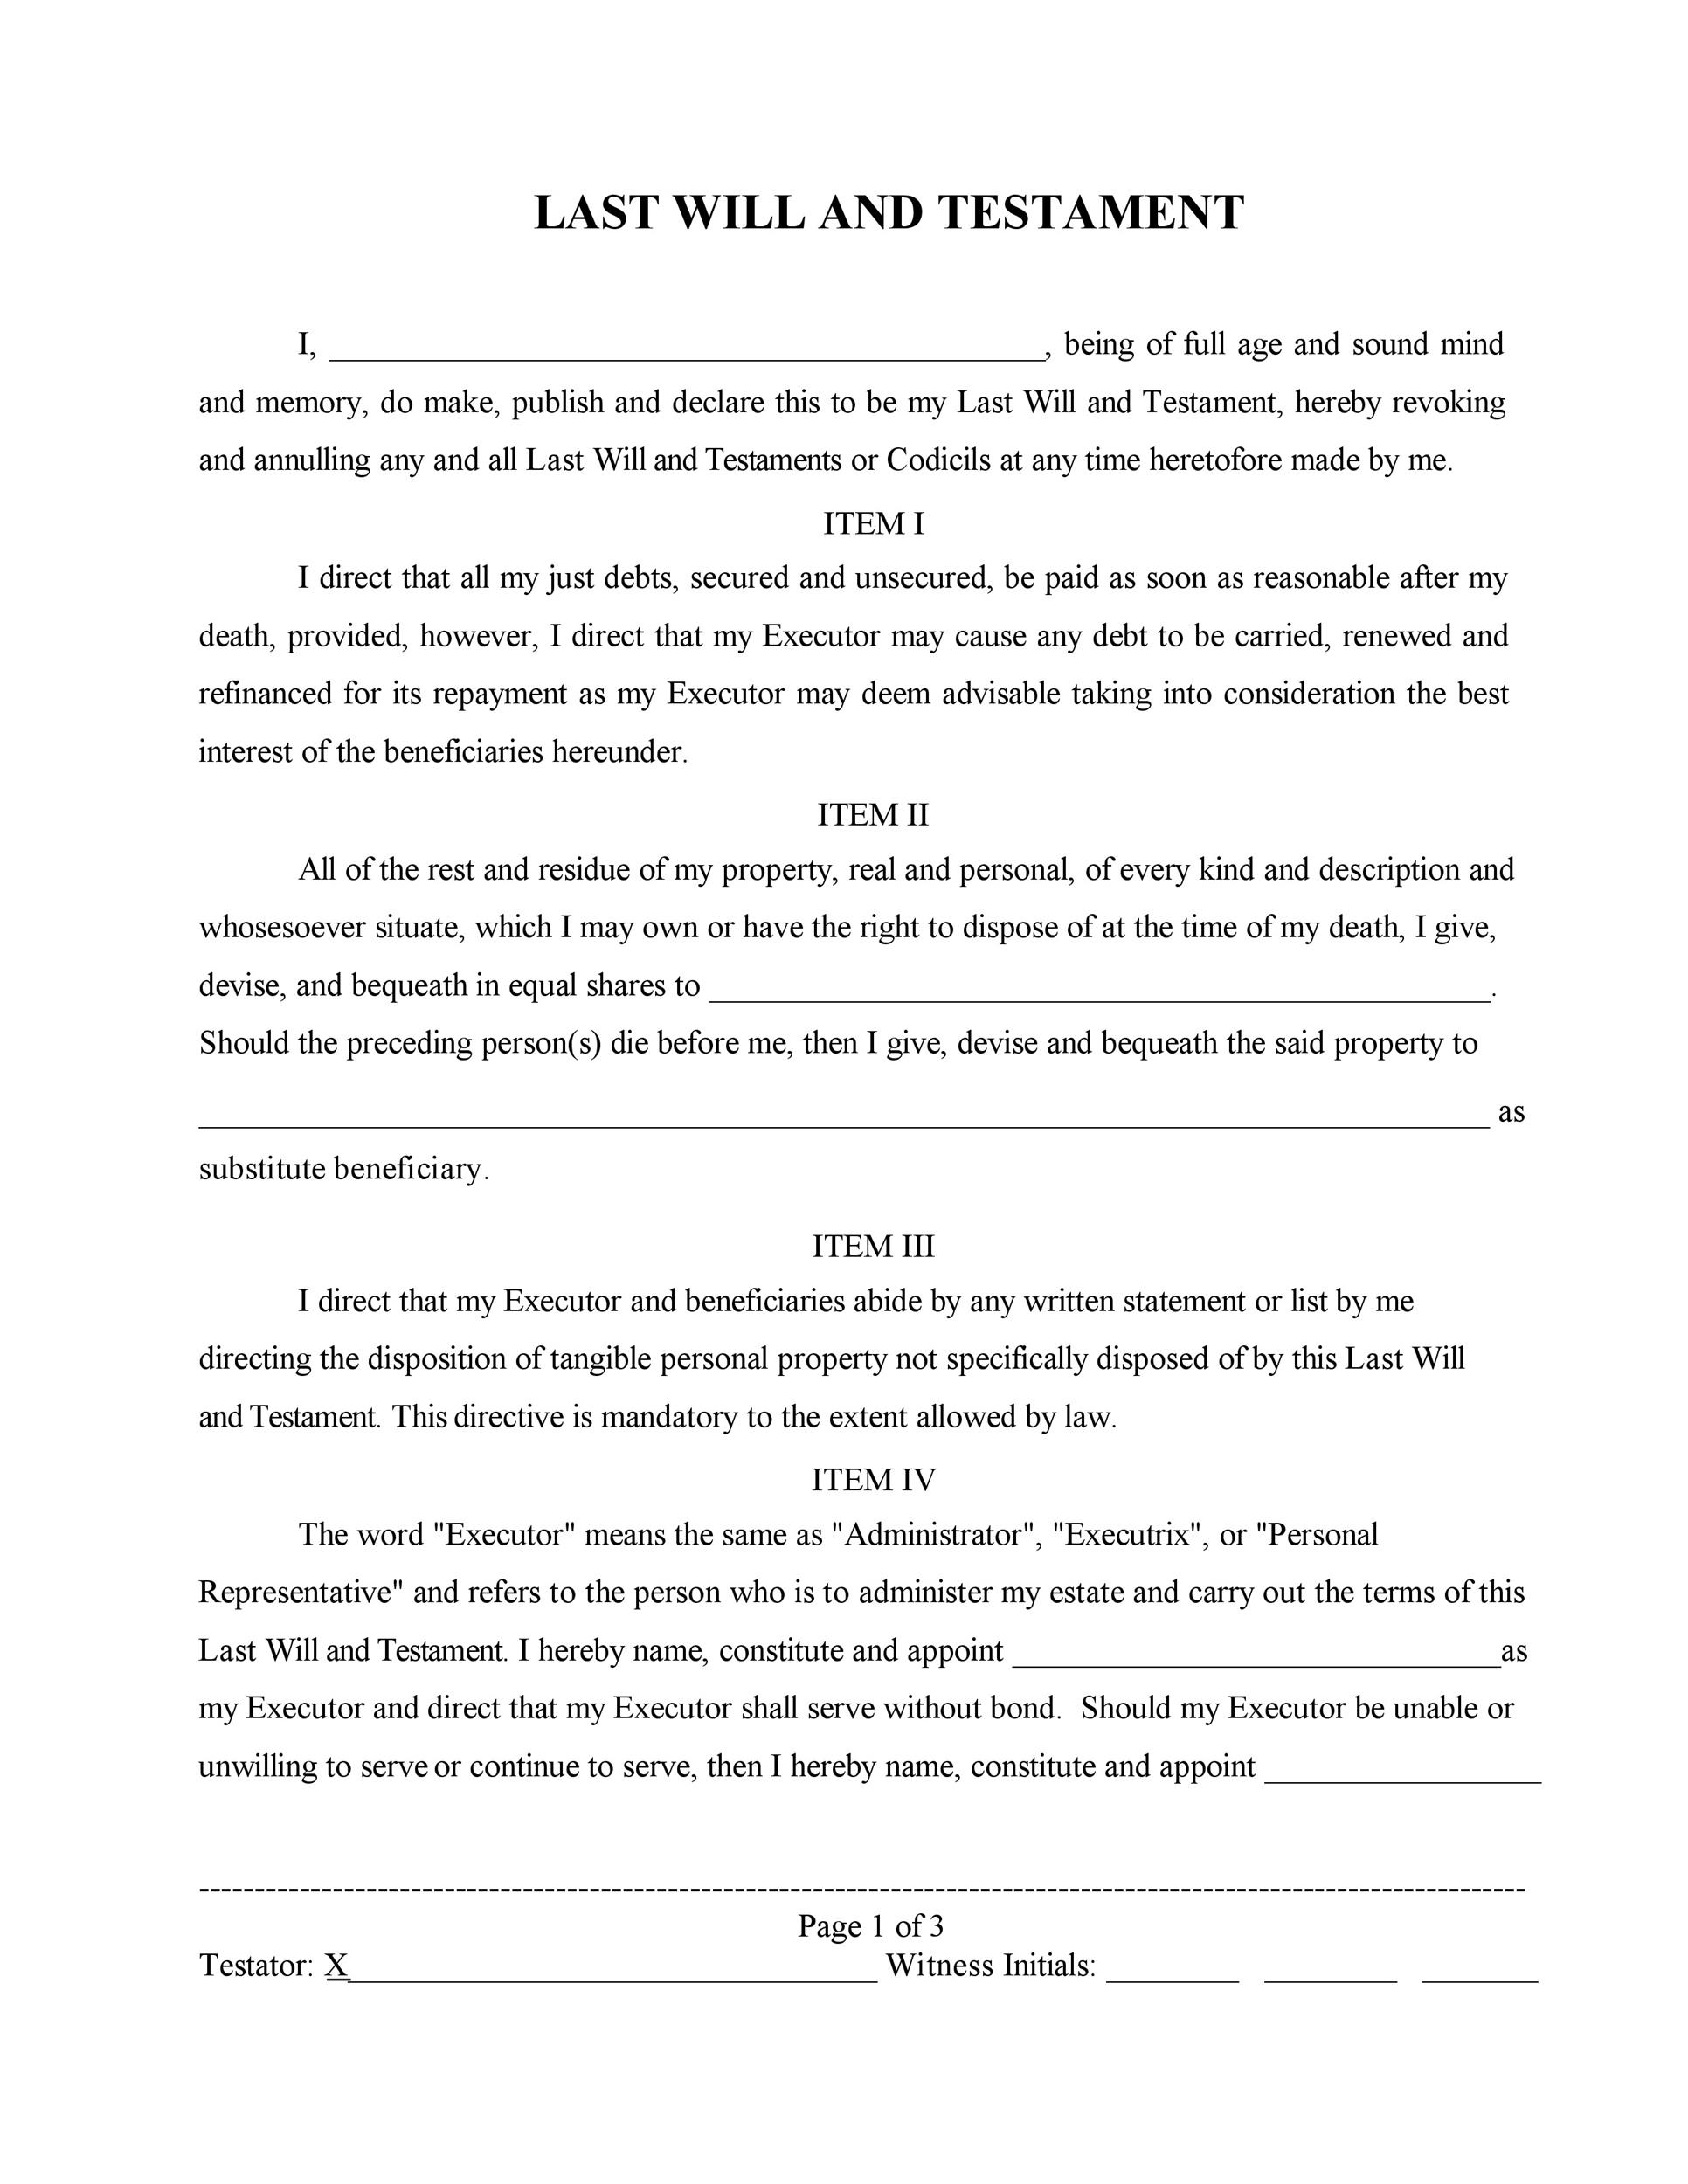 Free Last will and testament template 01